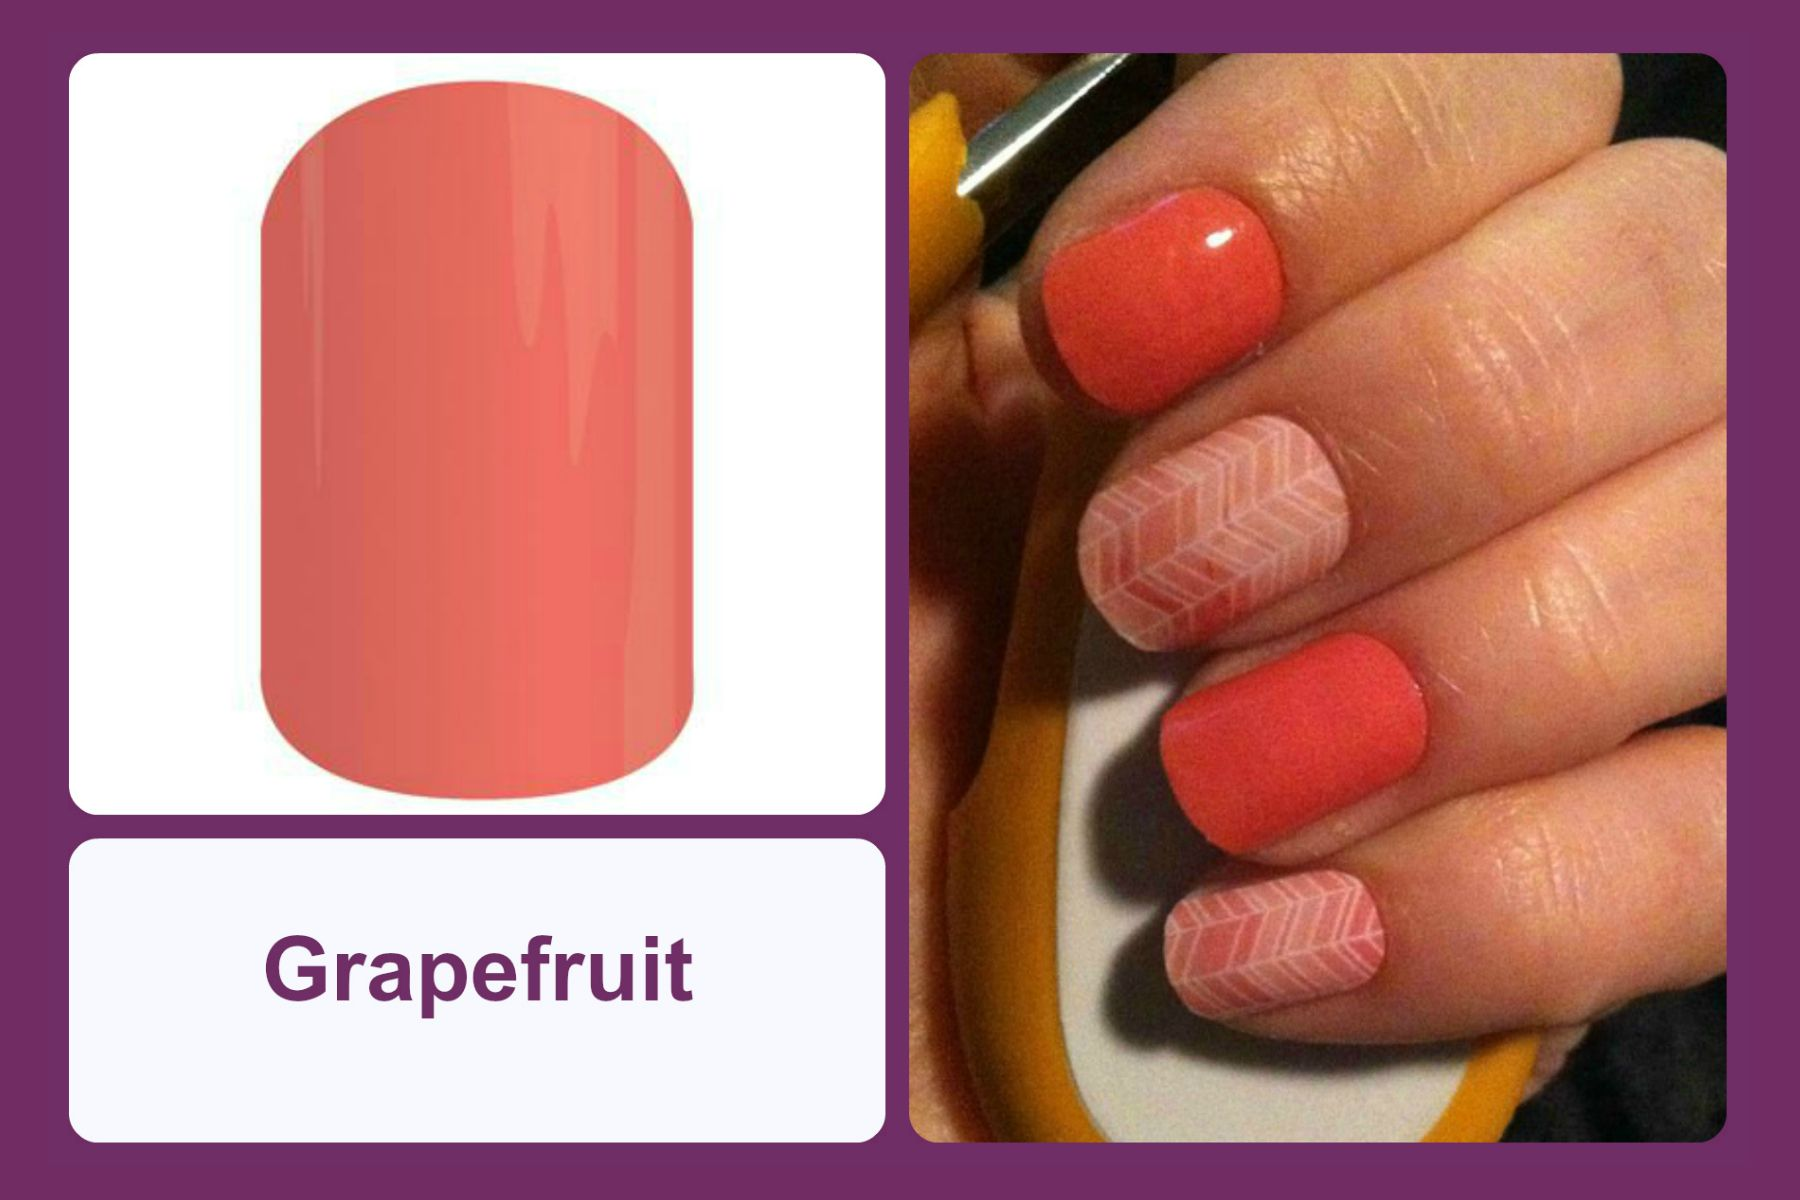 Somewhere between orange and pink lies grapefruit, a gorgeous neutral that pairs well with other colors and designs. #bevsjamminnails https://bkimball.jamberry.com/us/en/shop/products/grapefruit#.VxeldvkrJQI